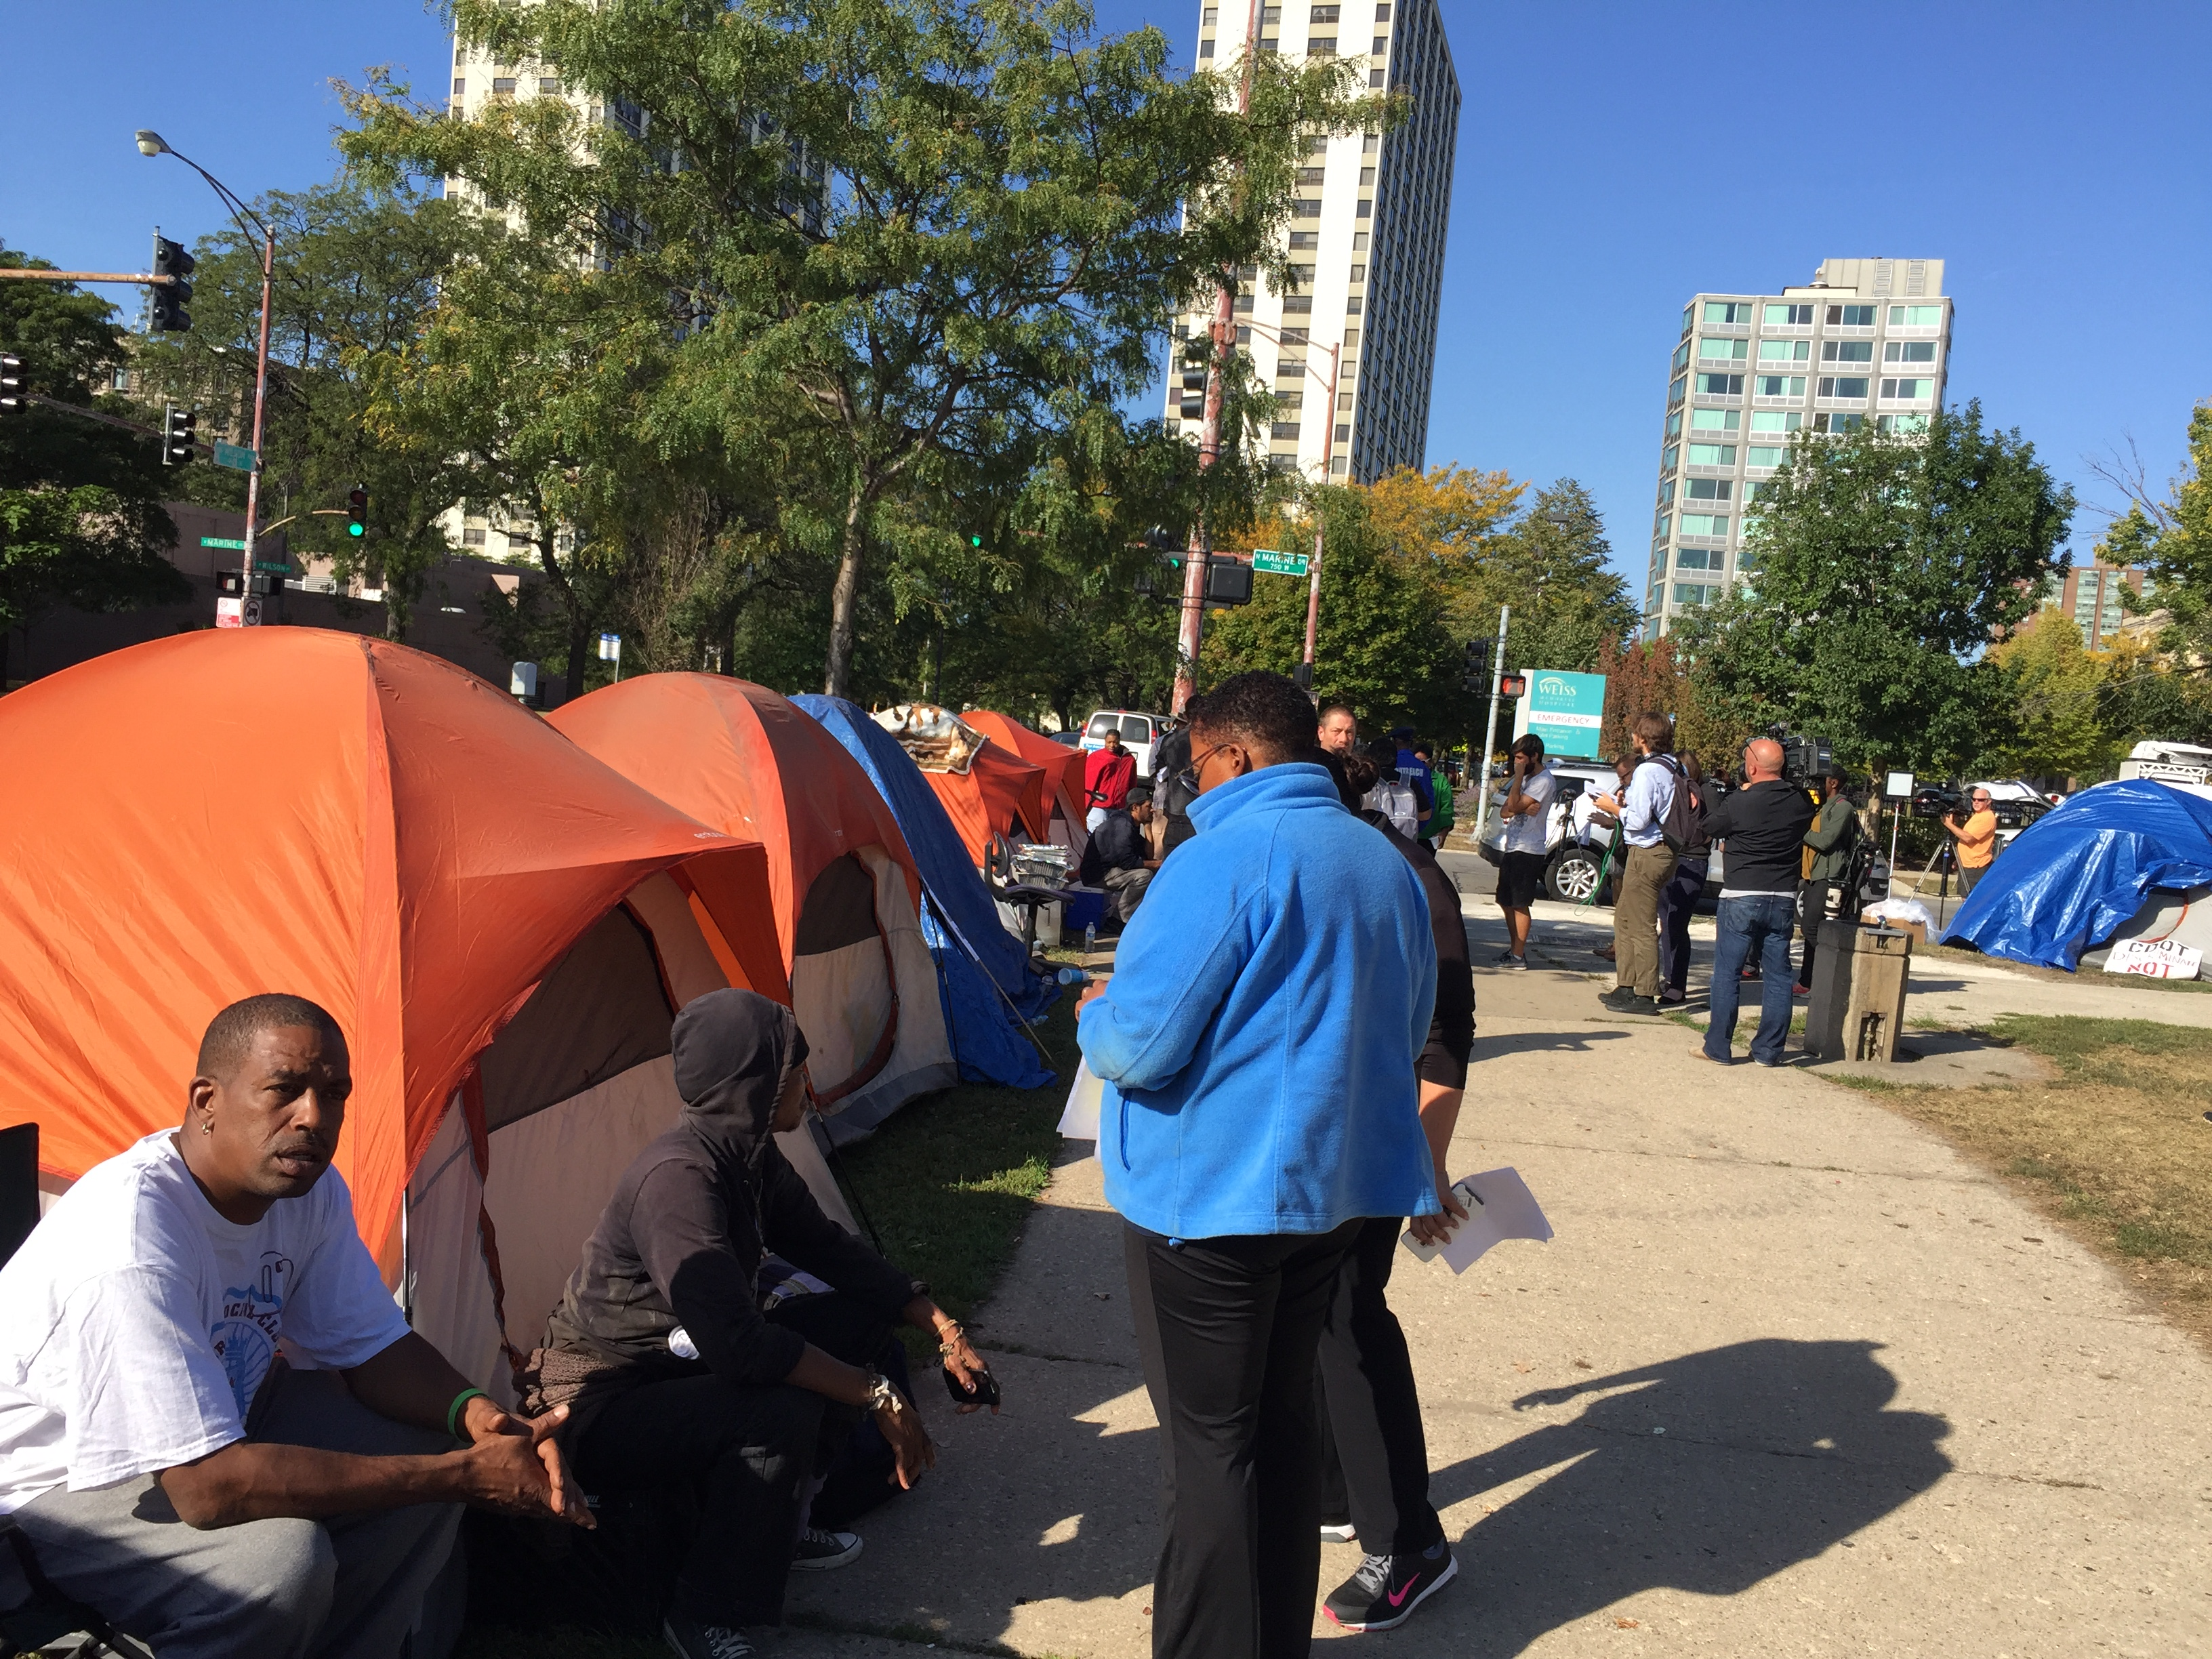 Federal lawsuit blasts Chicago's destruction of homeless tent cities